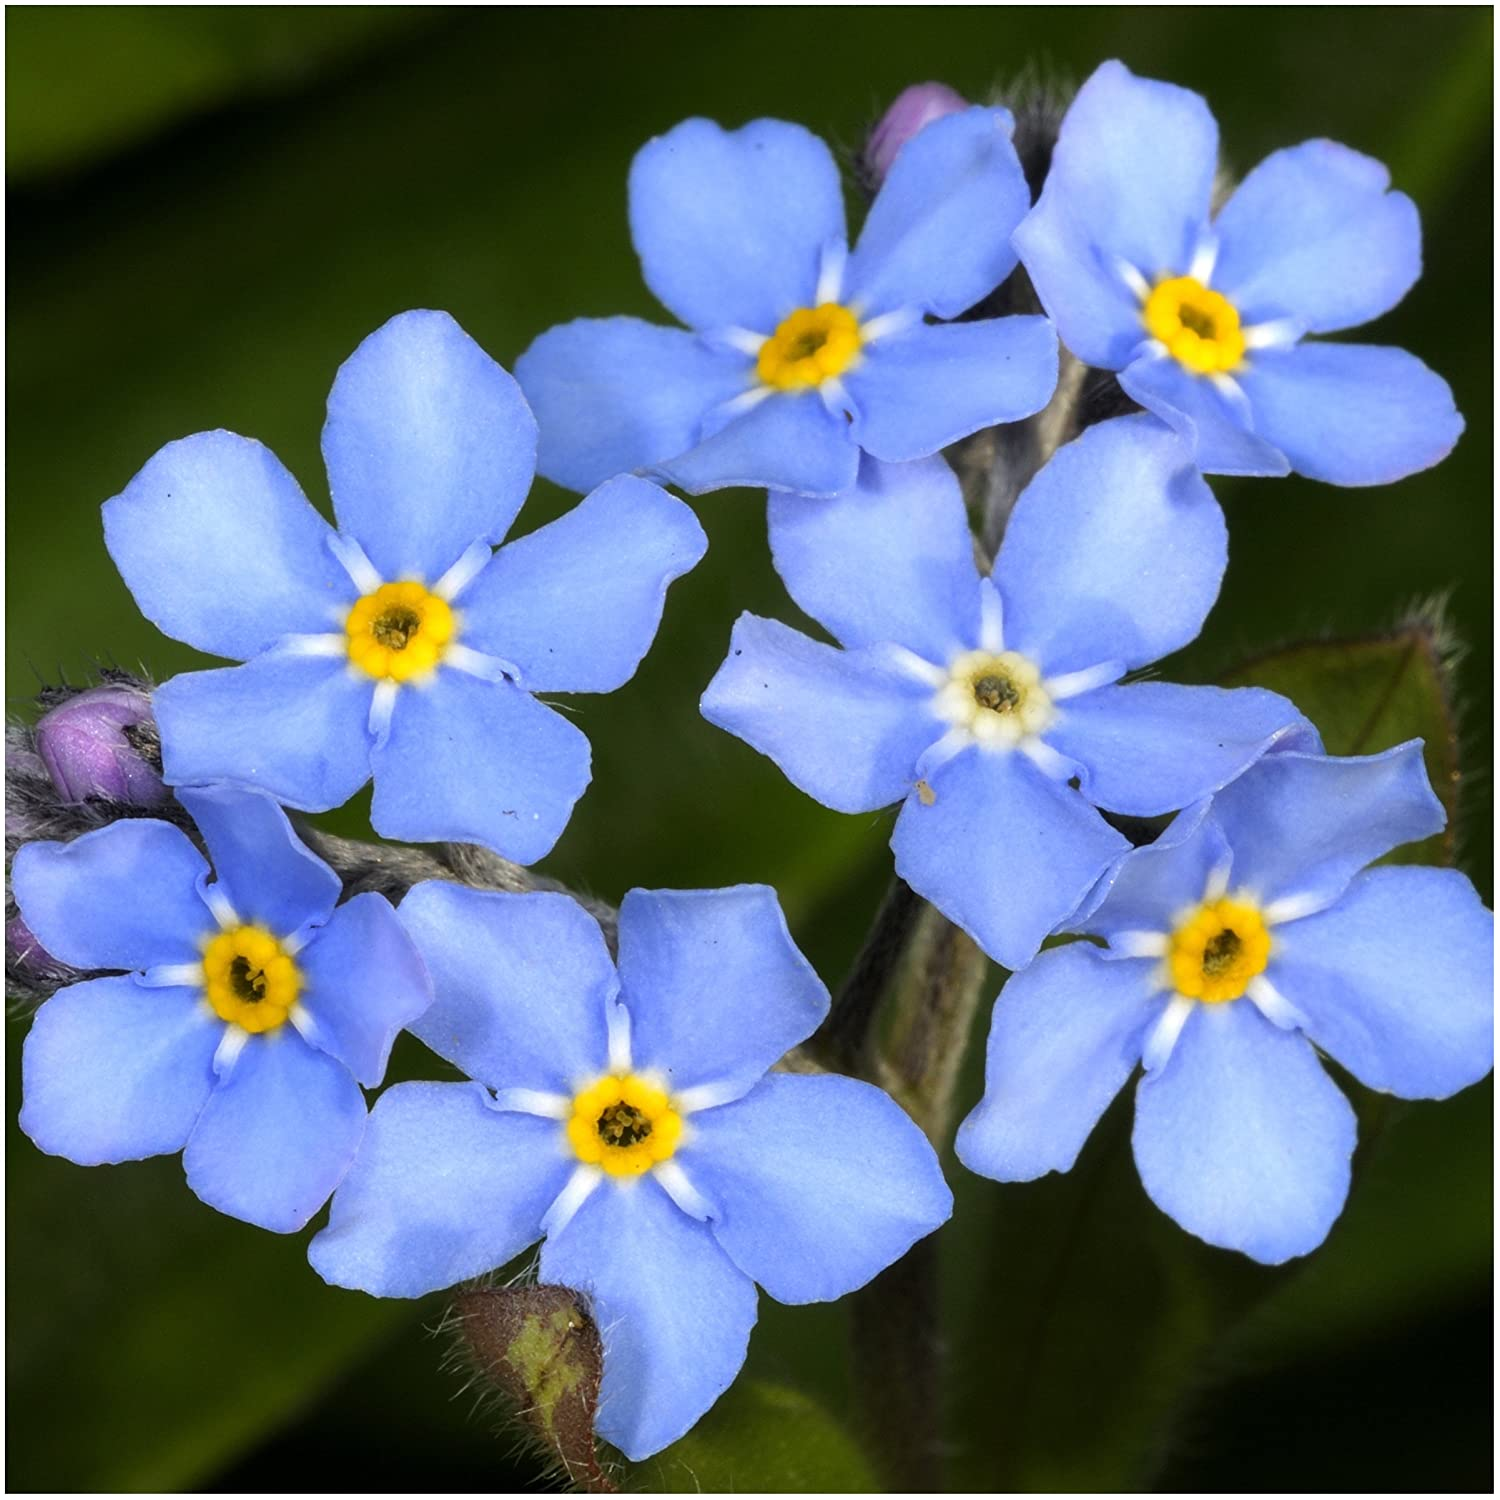 Etymological Meaning of the Forget Me Not Flower